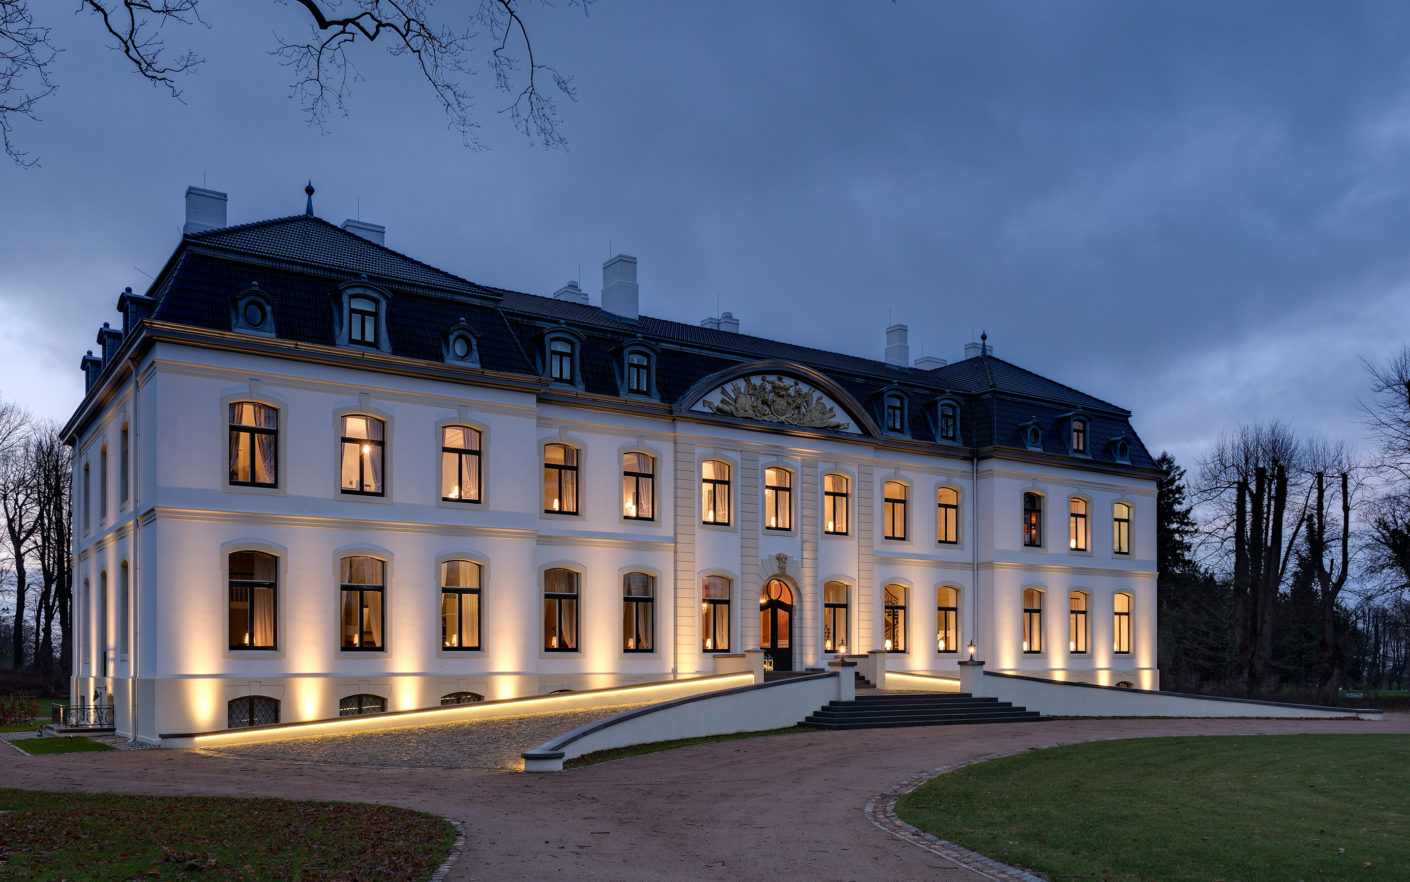 The 5-star Schlossgut Weissenhaus hotel in Schleswig-Holstein is scattered across no less than 40 historical buildings that formed the ancient estate.